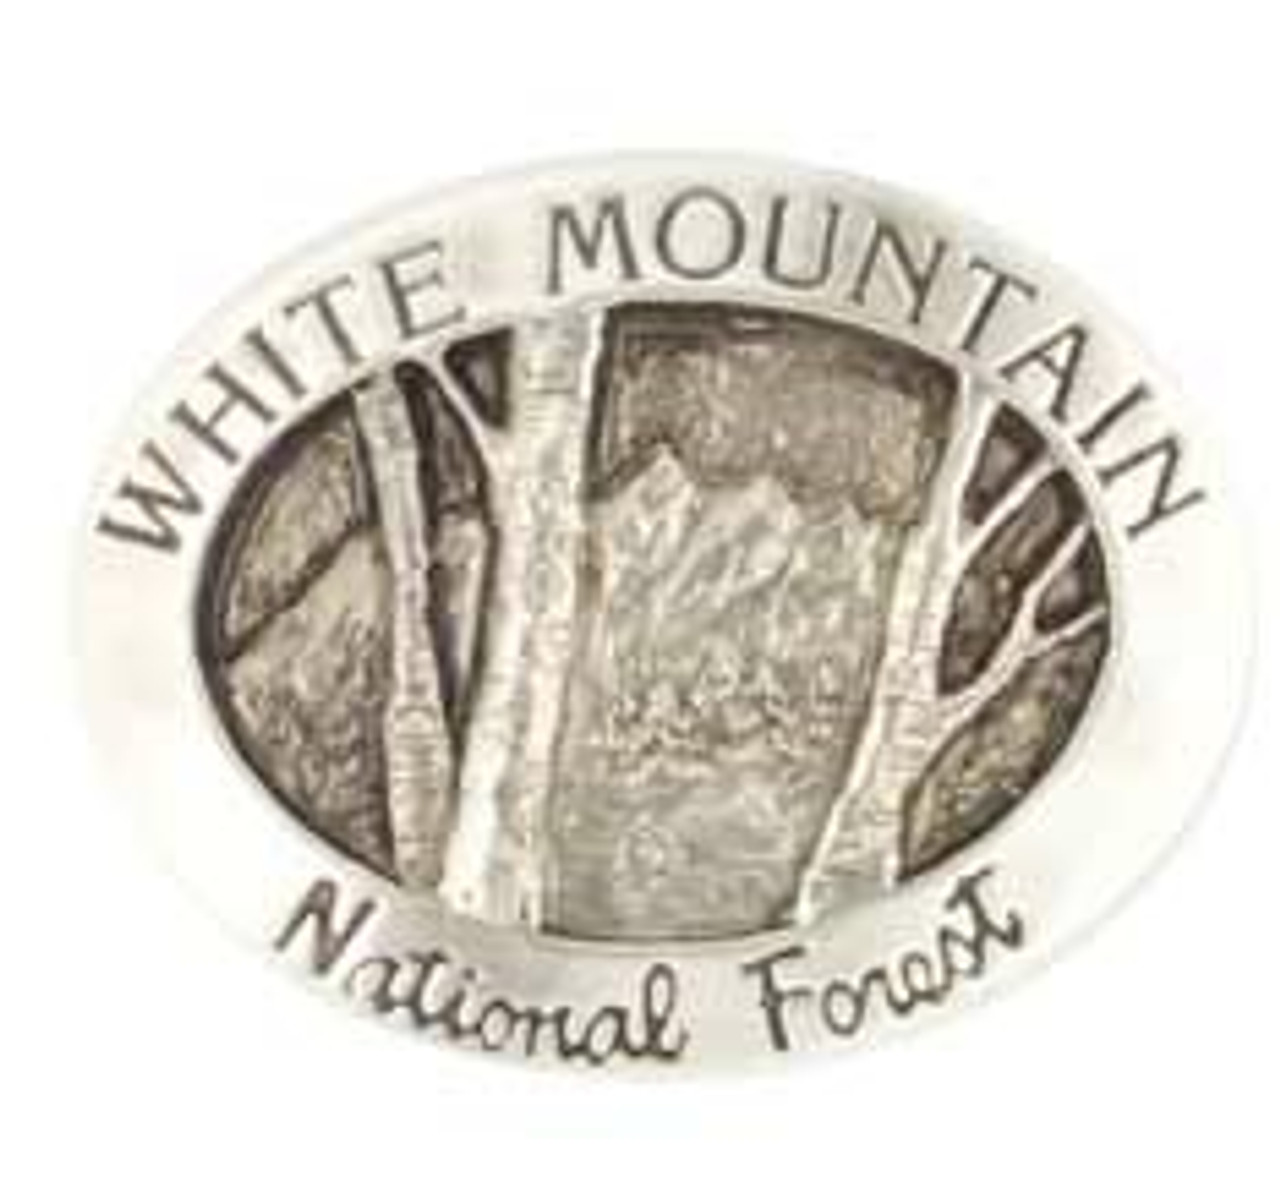 White Mountain National Forest Buckle